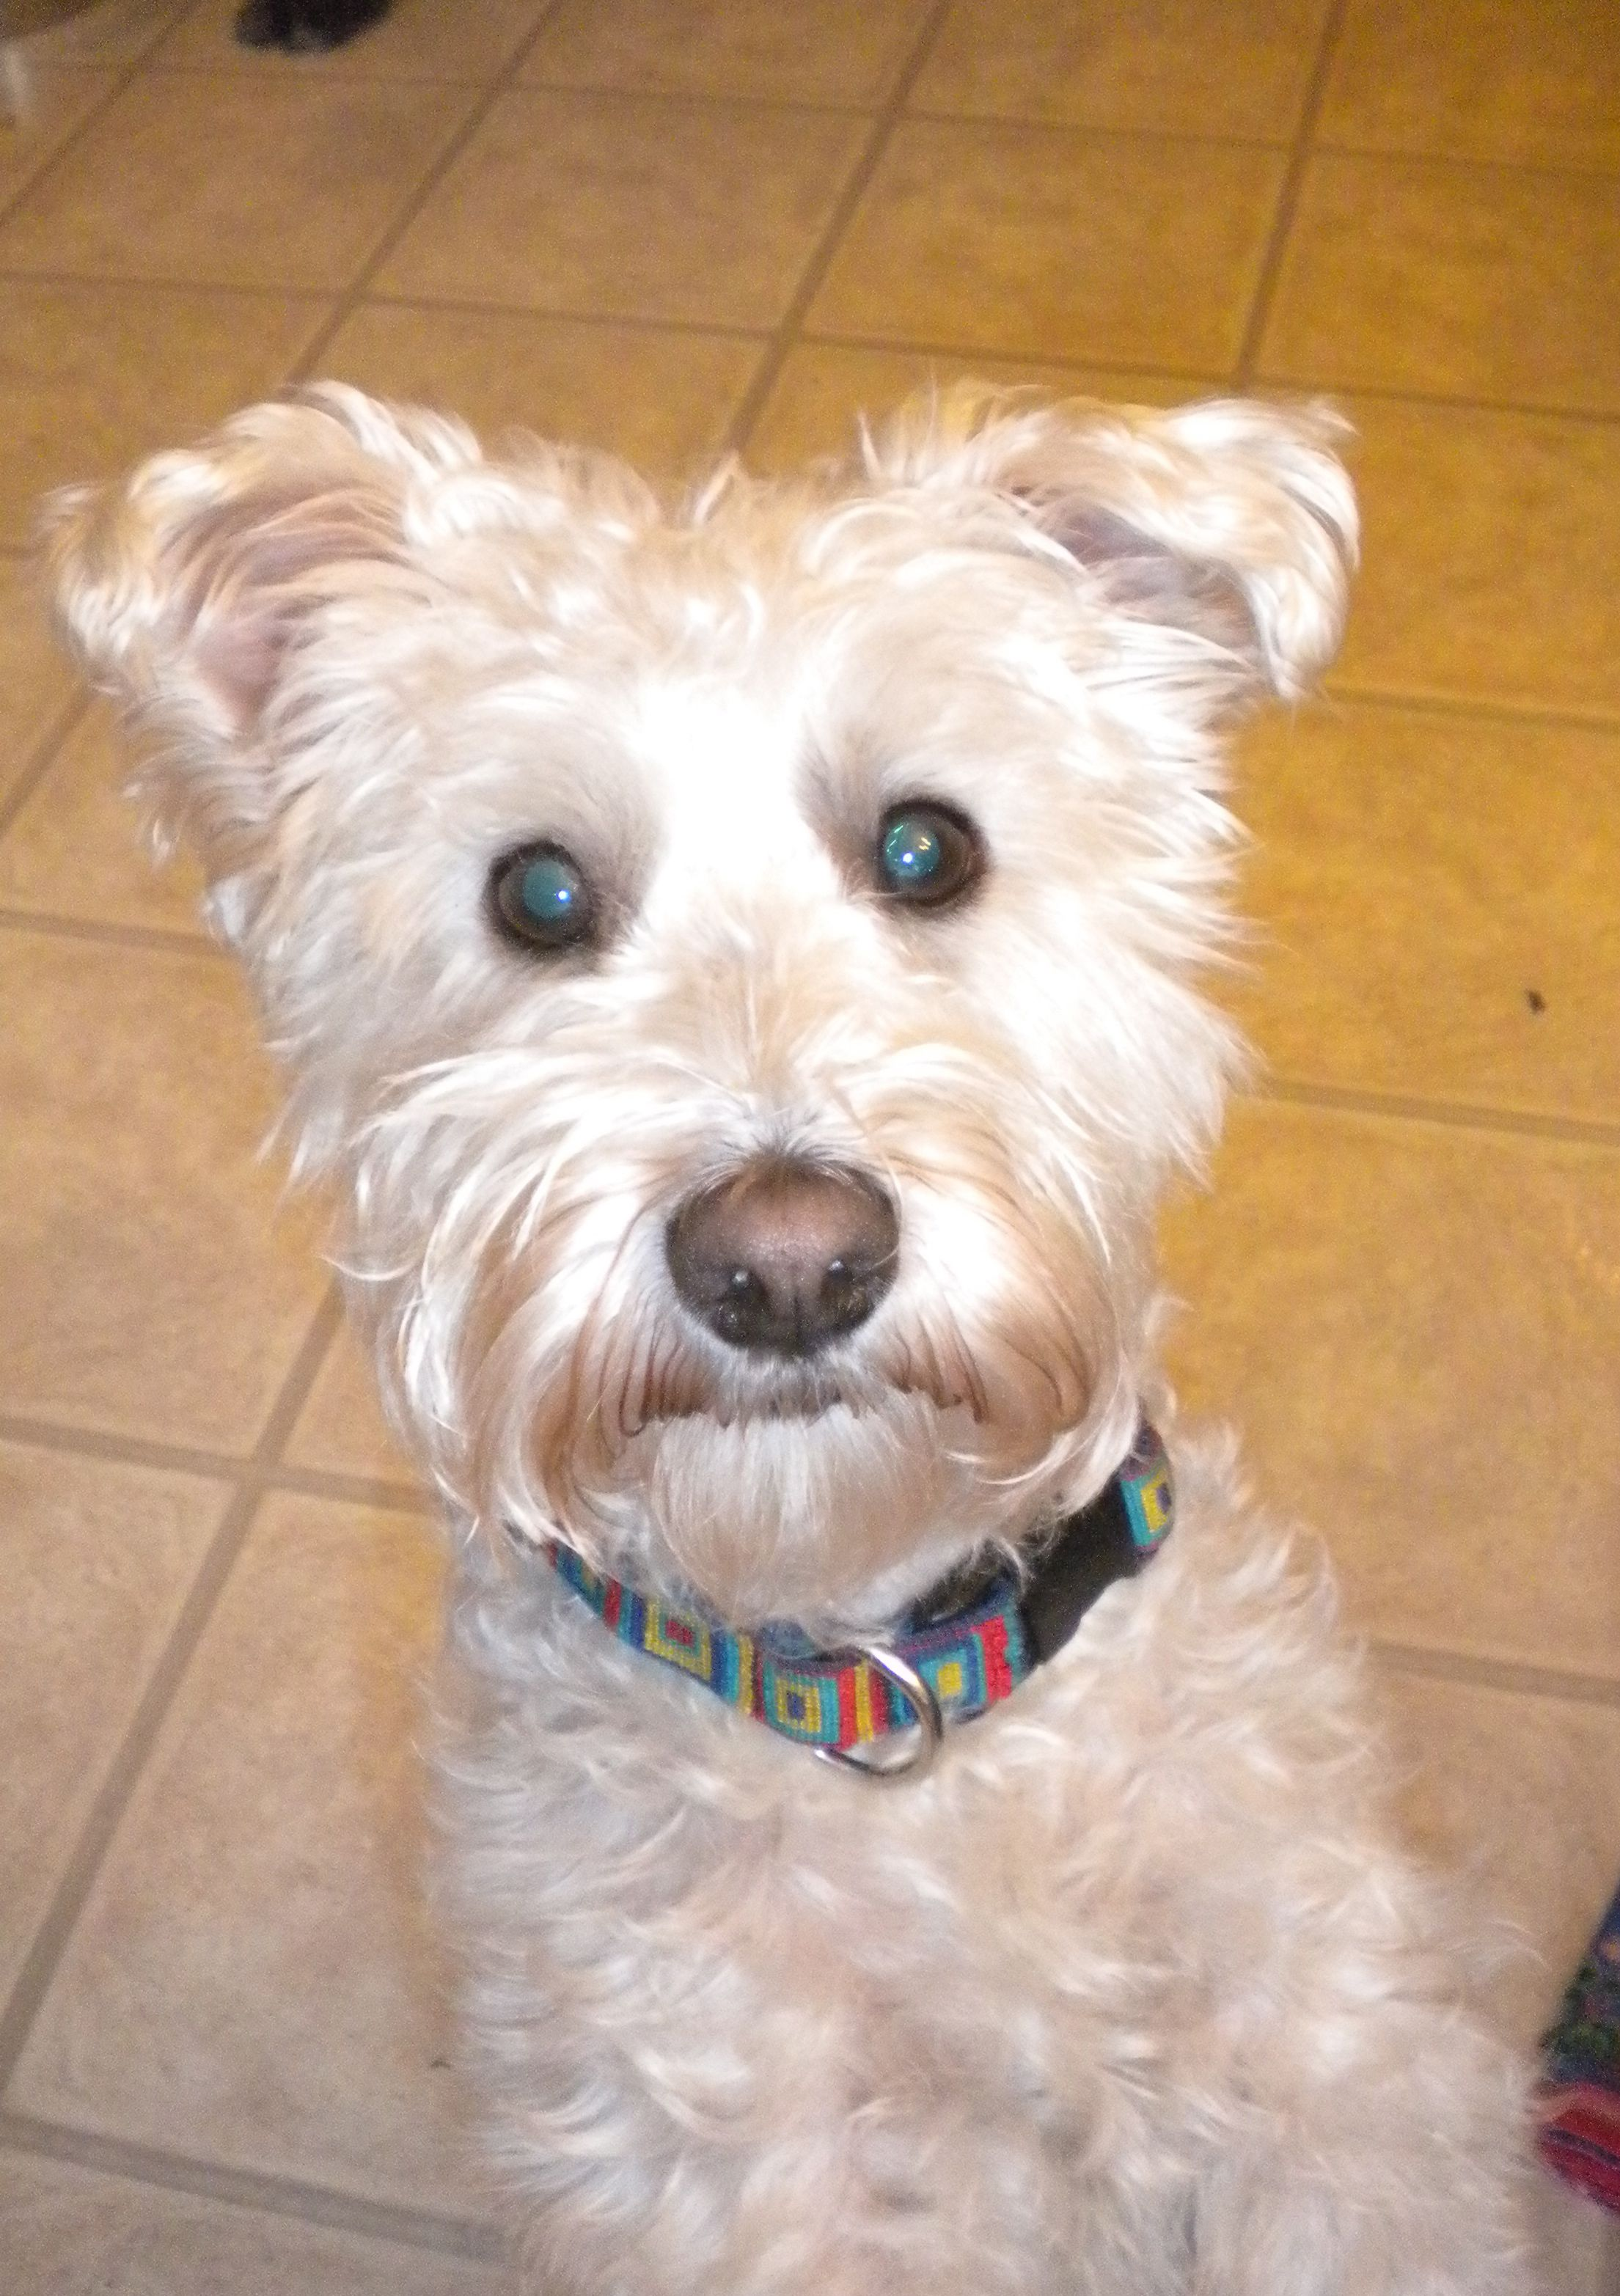 This Is Toto My 3 Year Old Schnoodle Schnauzer Poodle Mix I Rescued Him Right After My Freshman Year Of College From A Family Who Didn T Want To Take Care O